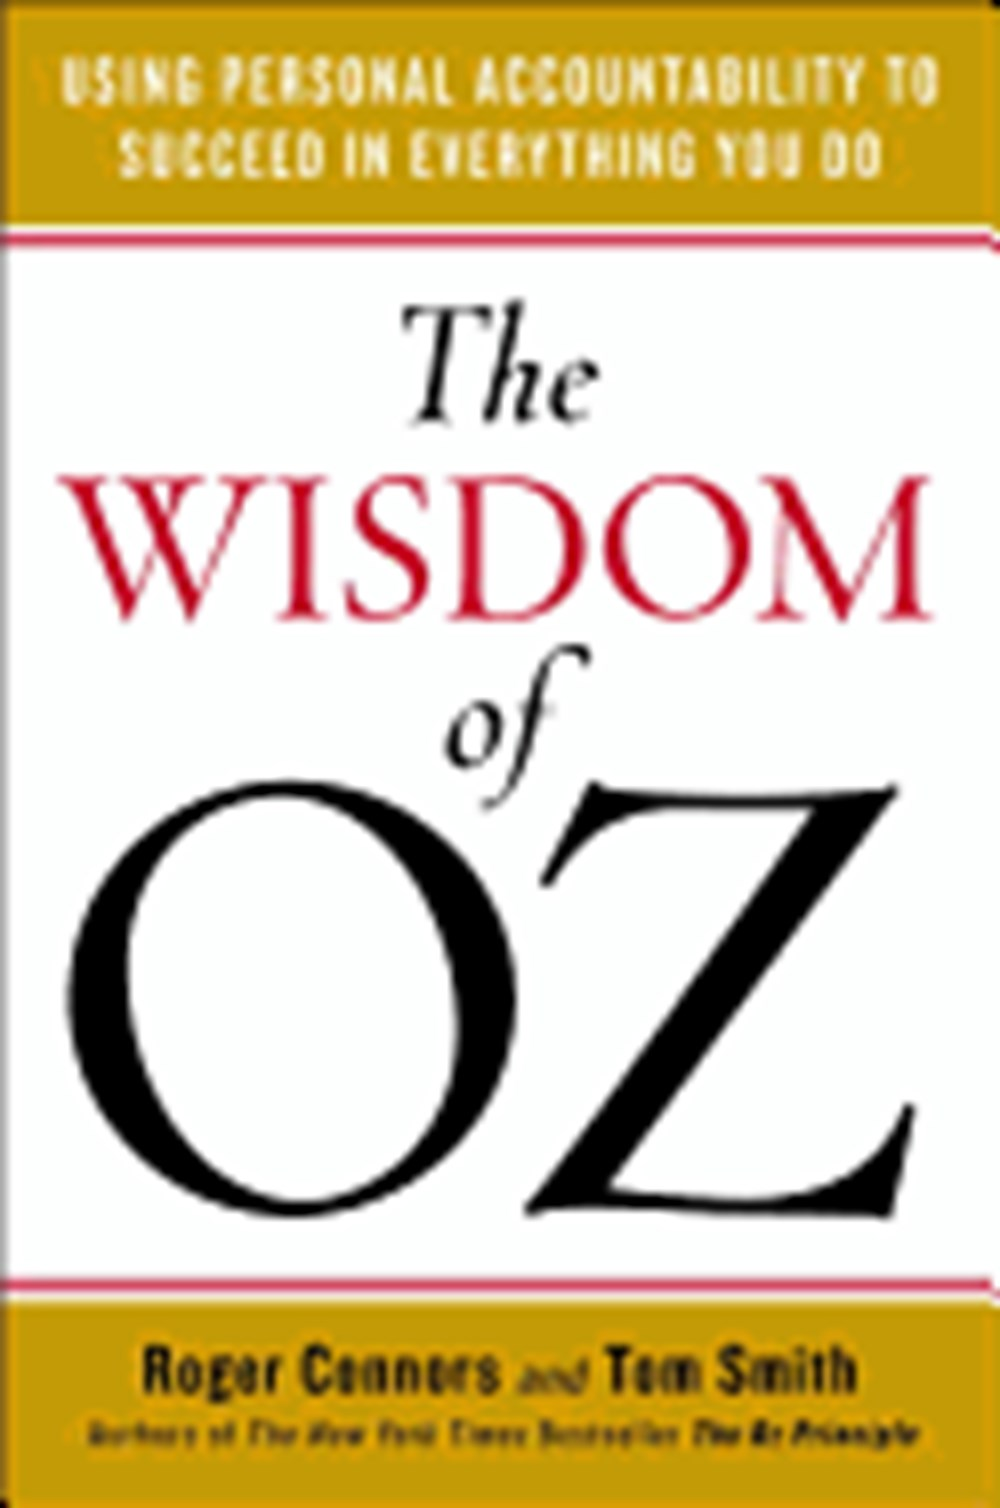 Wisdom of Oz Using Personal Accountability to Succeed in Everything You Do